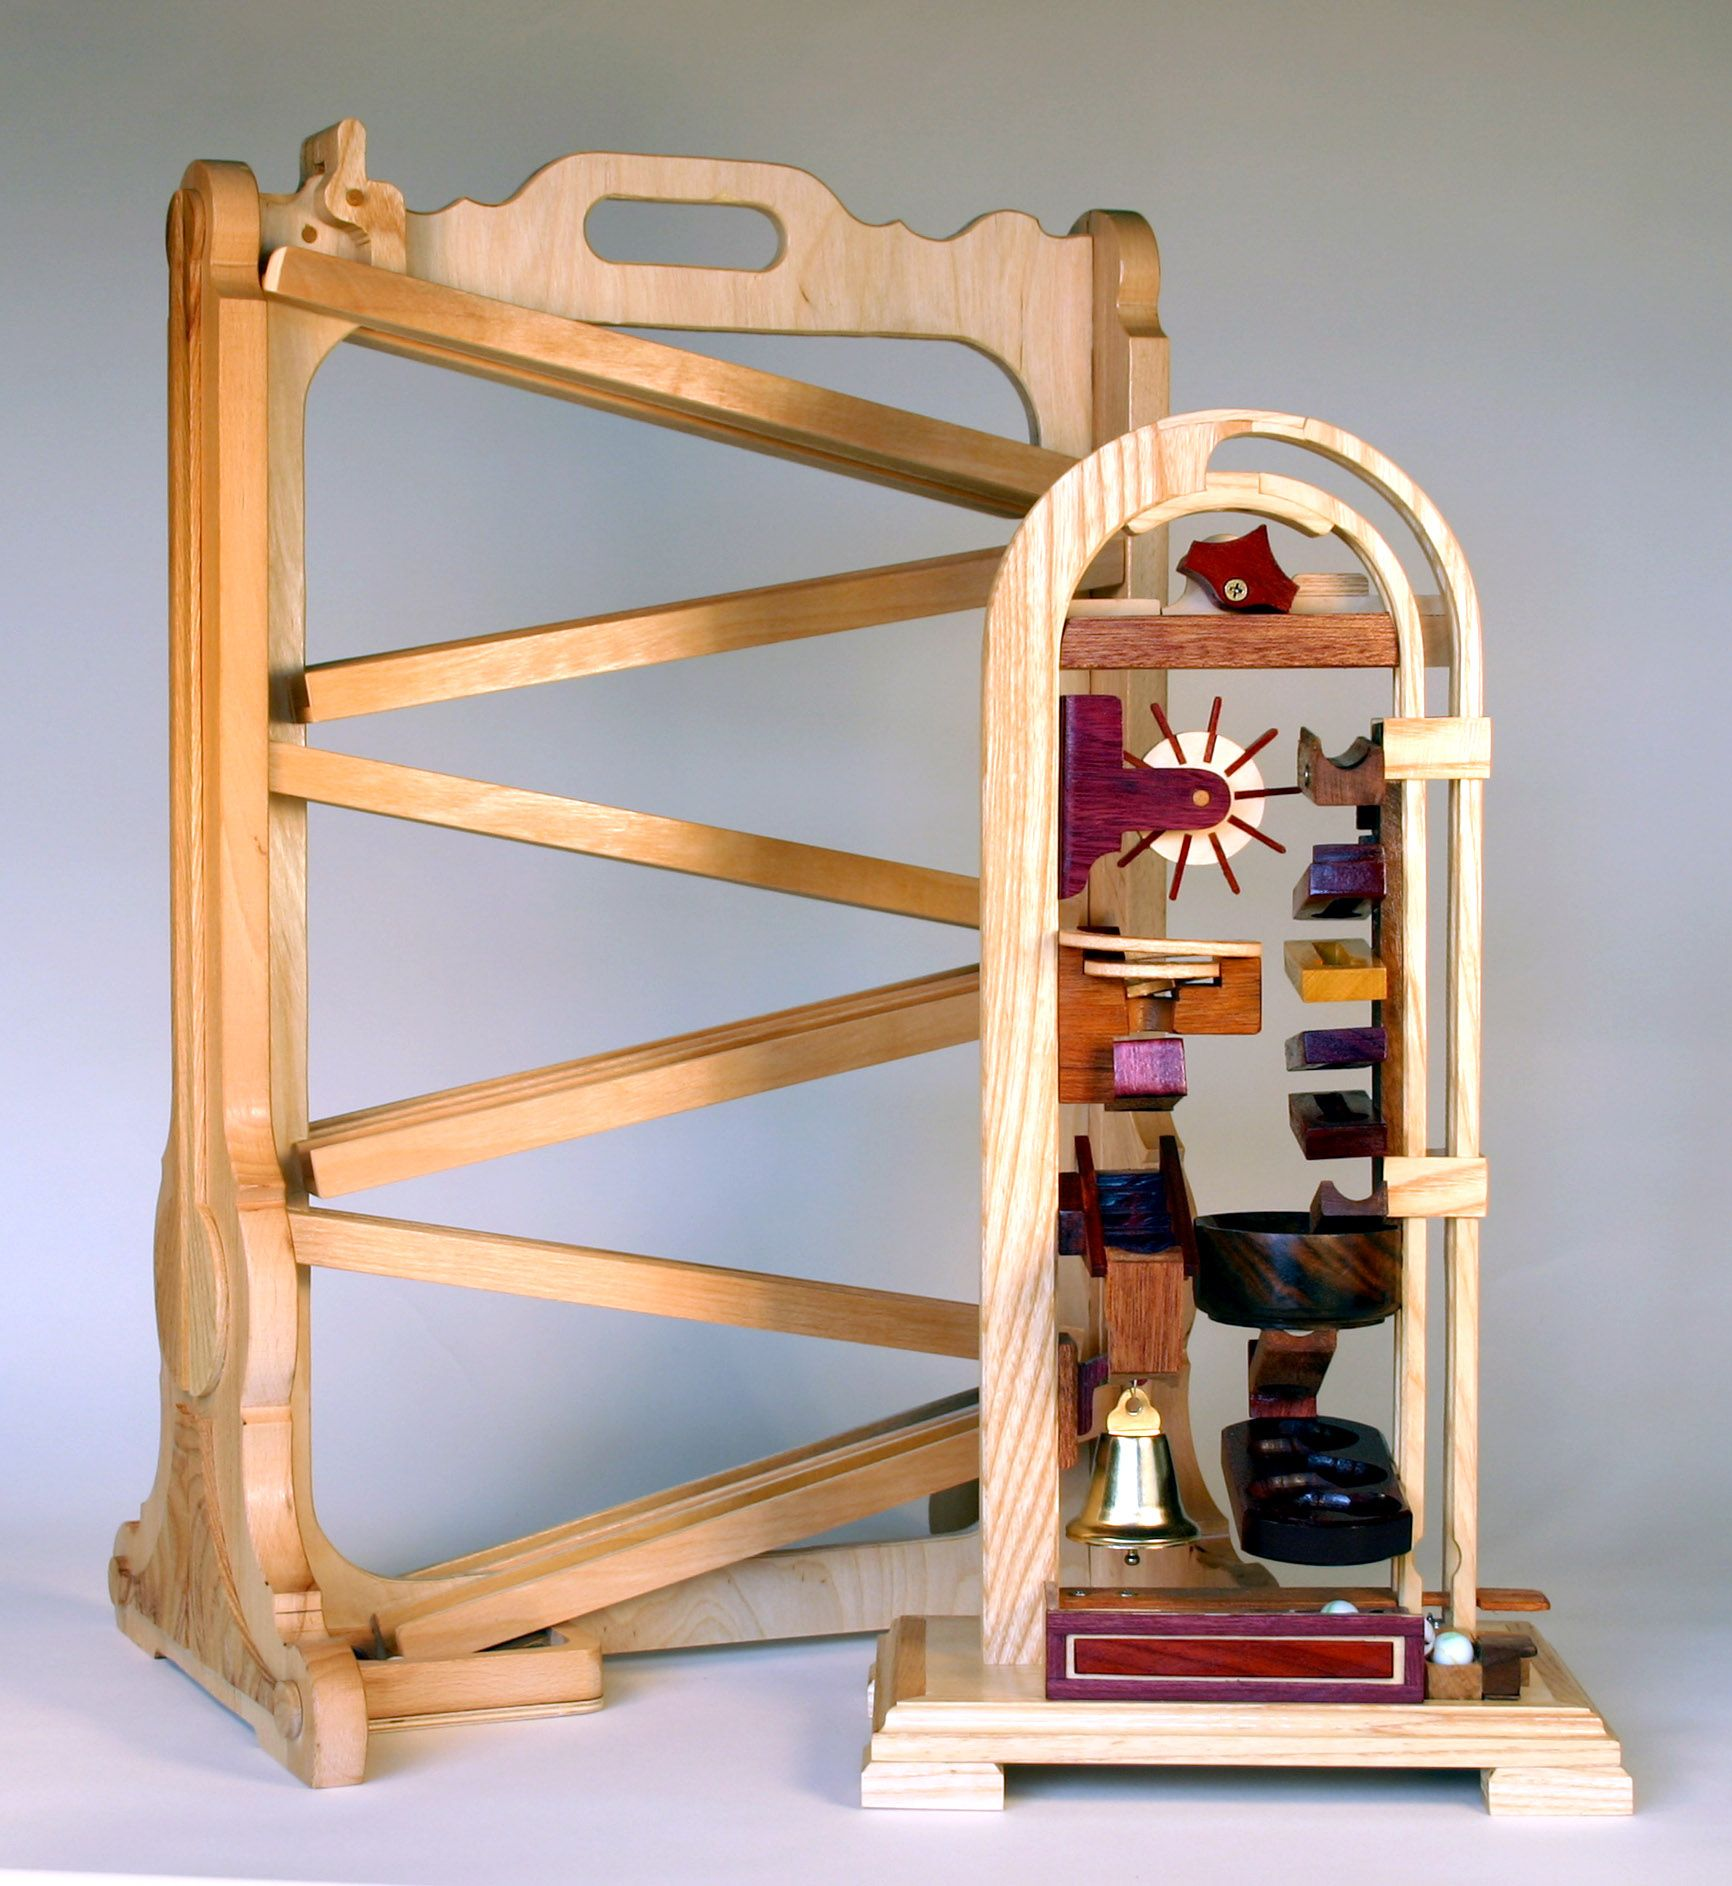 Tabletop Marble Games Woodworking plans Marble machine